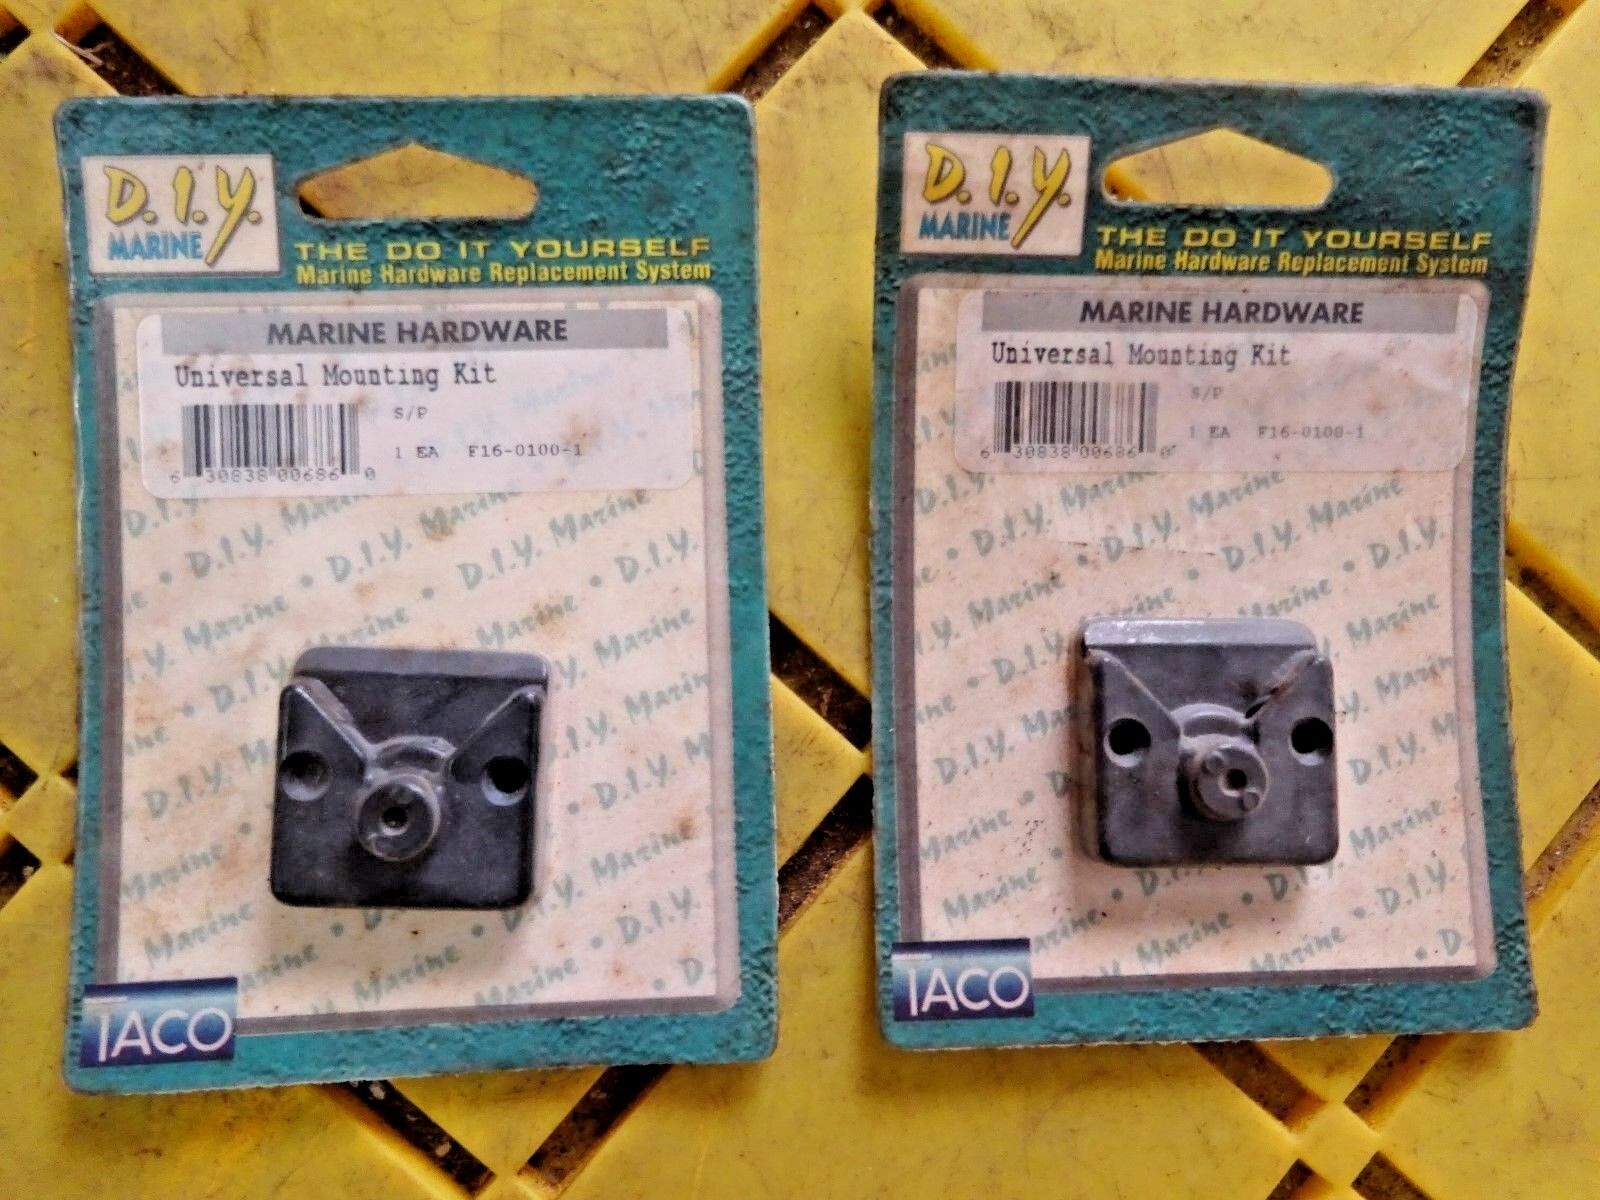 TACO MARINE F16-0100-1  BLK UNIVERSAL MOUNTING KIT  TO ATTACH TO A BUTTON 1 PAIR